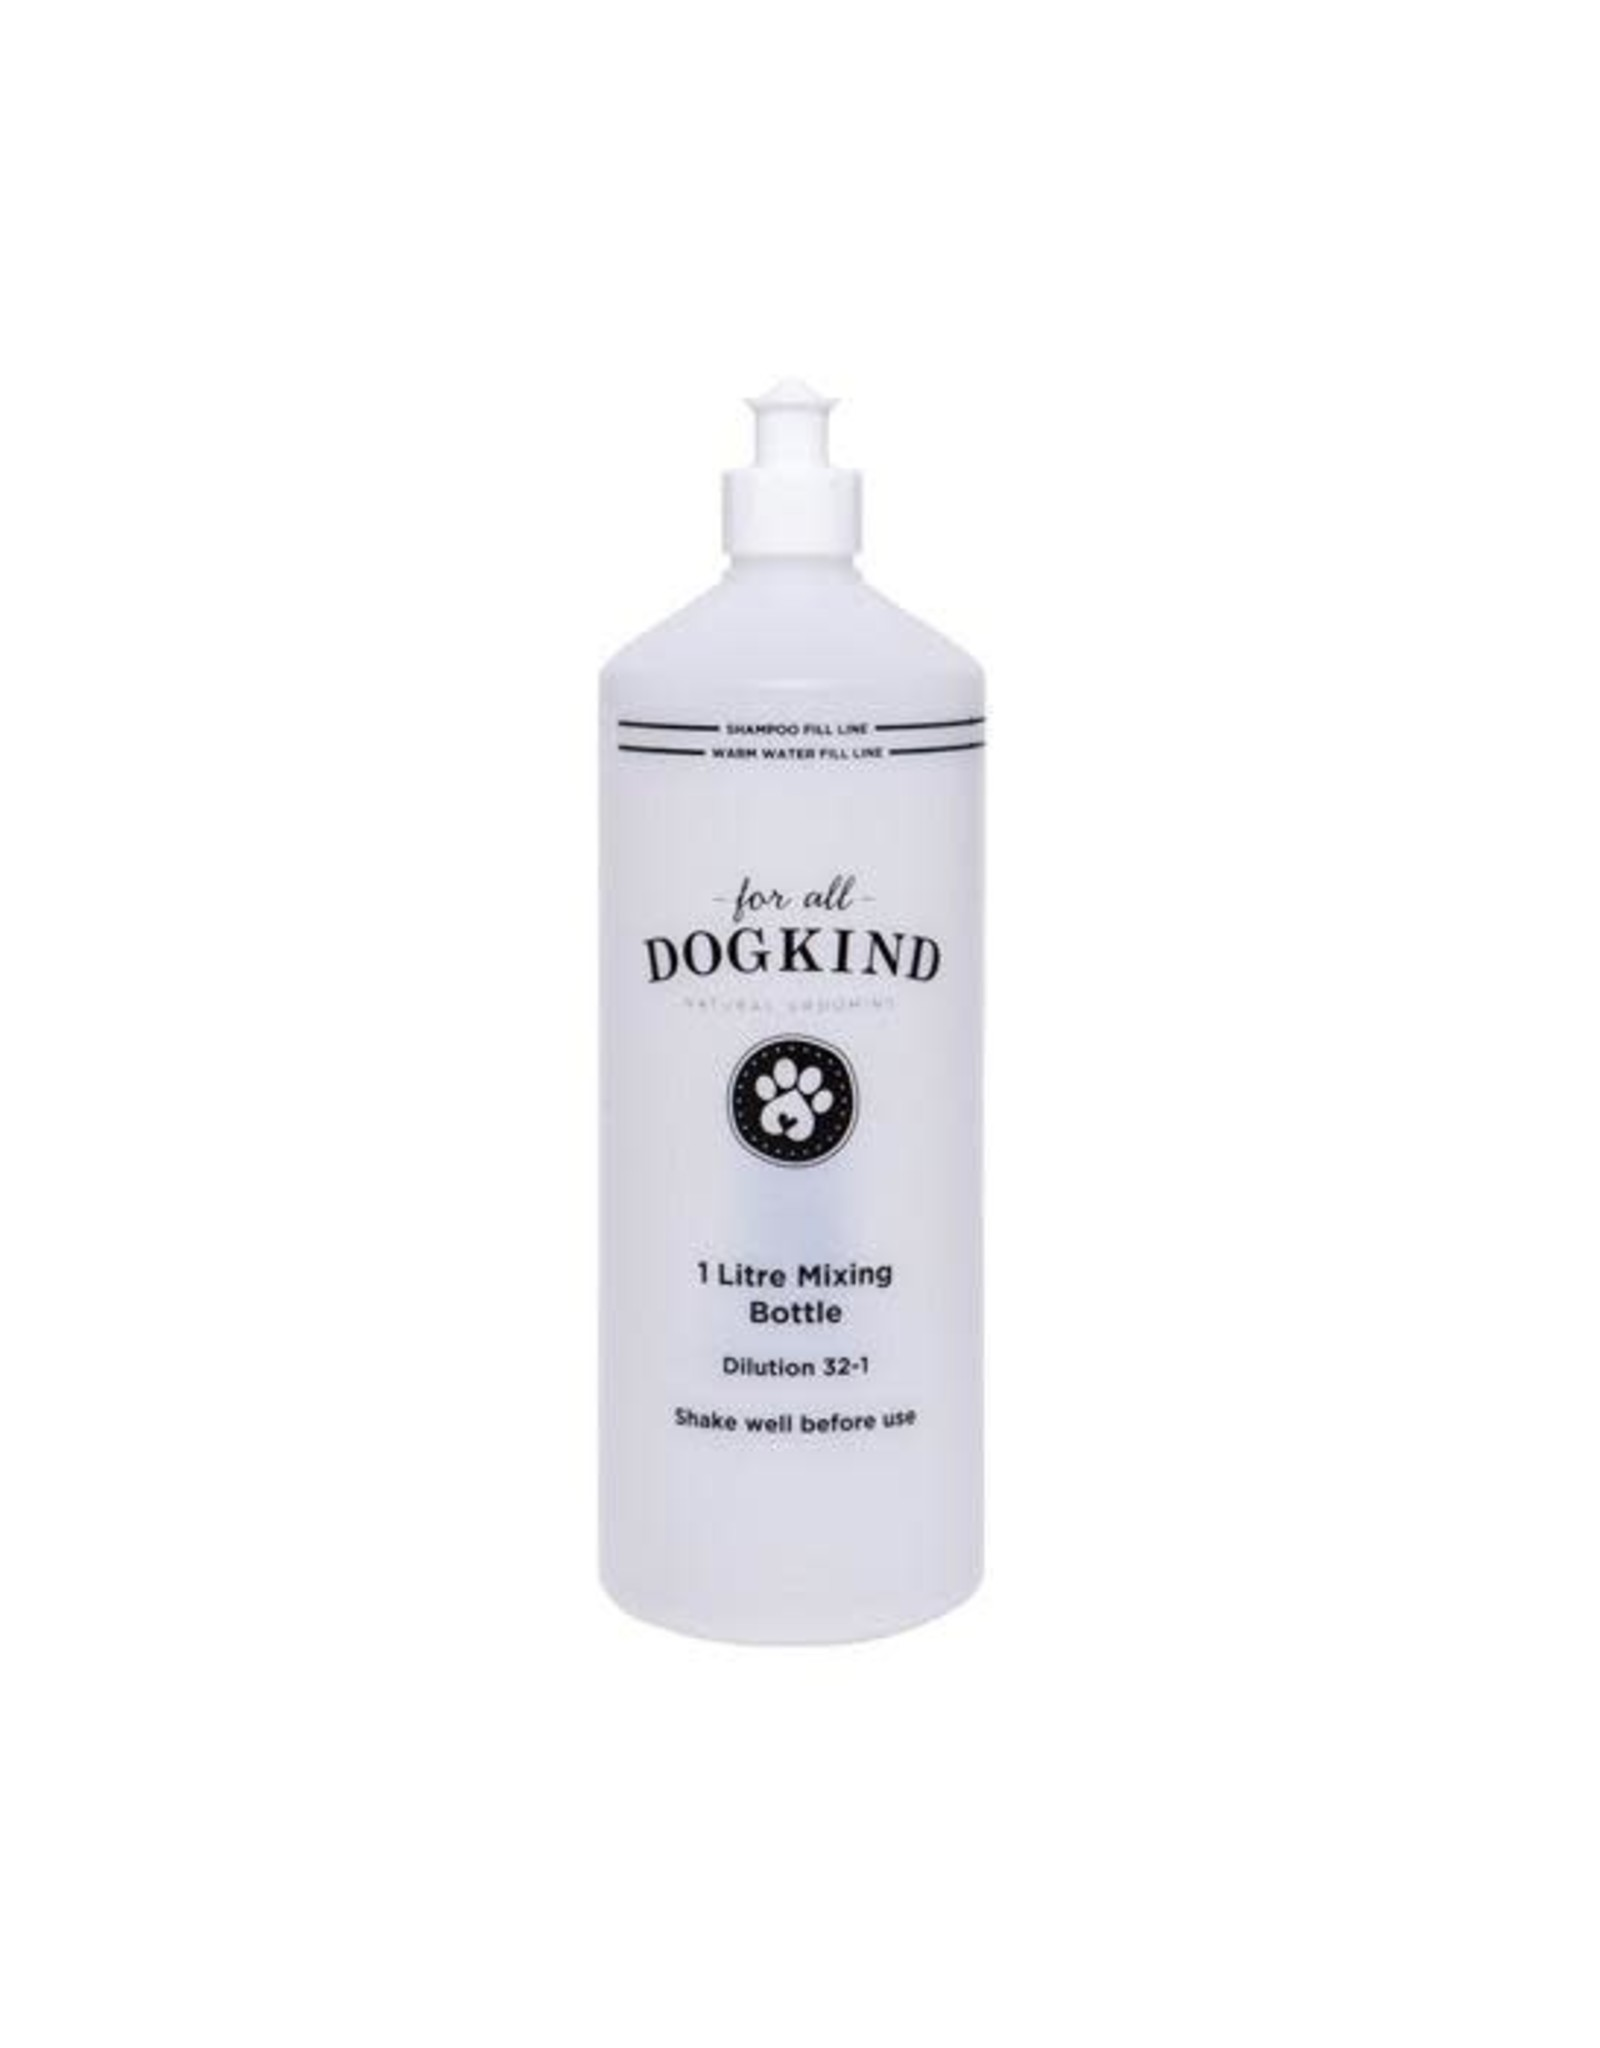 For All DogKind 1 Litre Shampoo Mixing Bottle